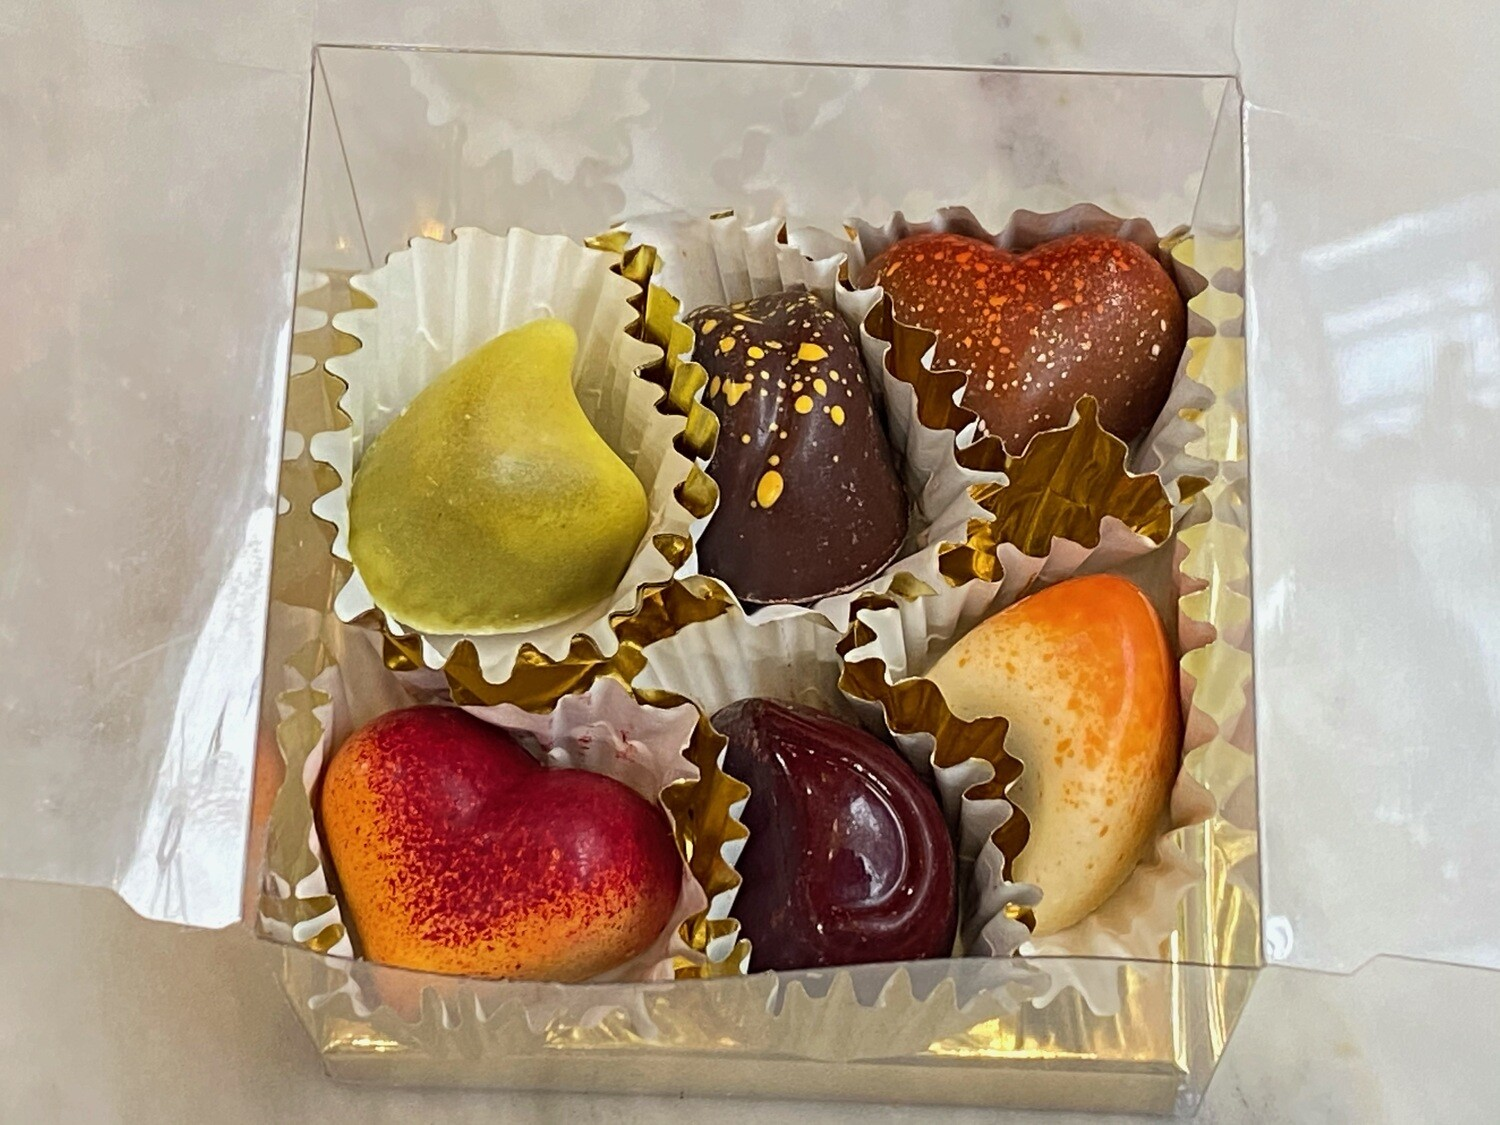 PRE-ORDER Valentine's Day Bonbons 6-Box for 2/13 or 2/14